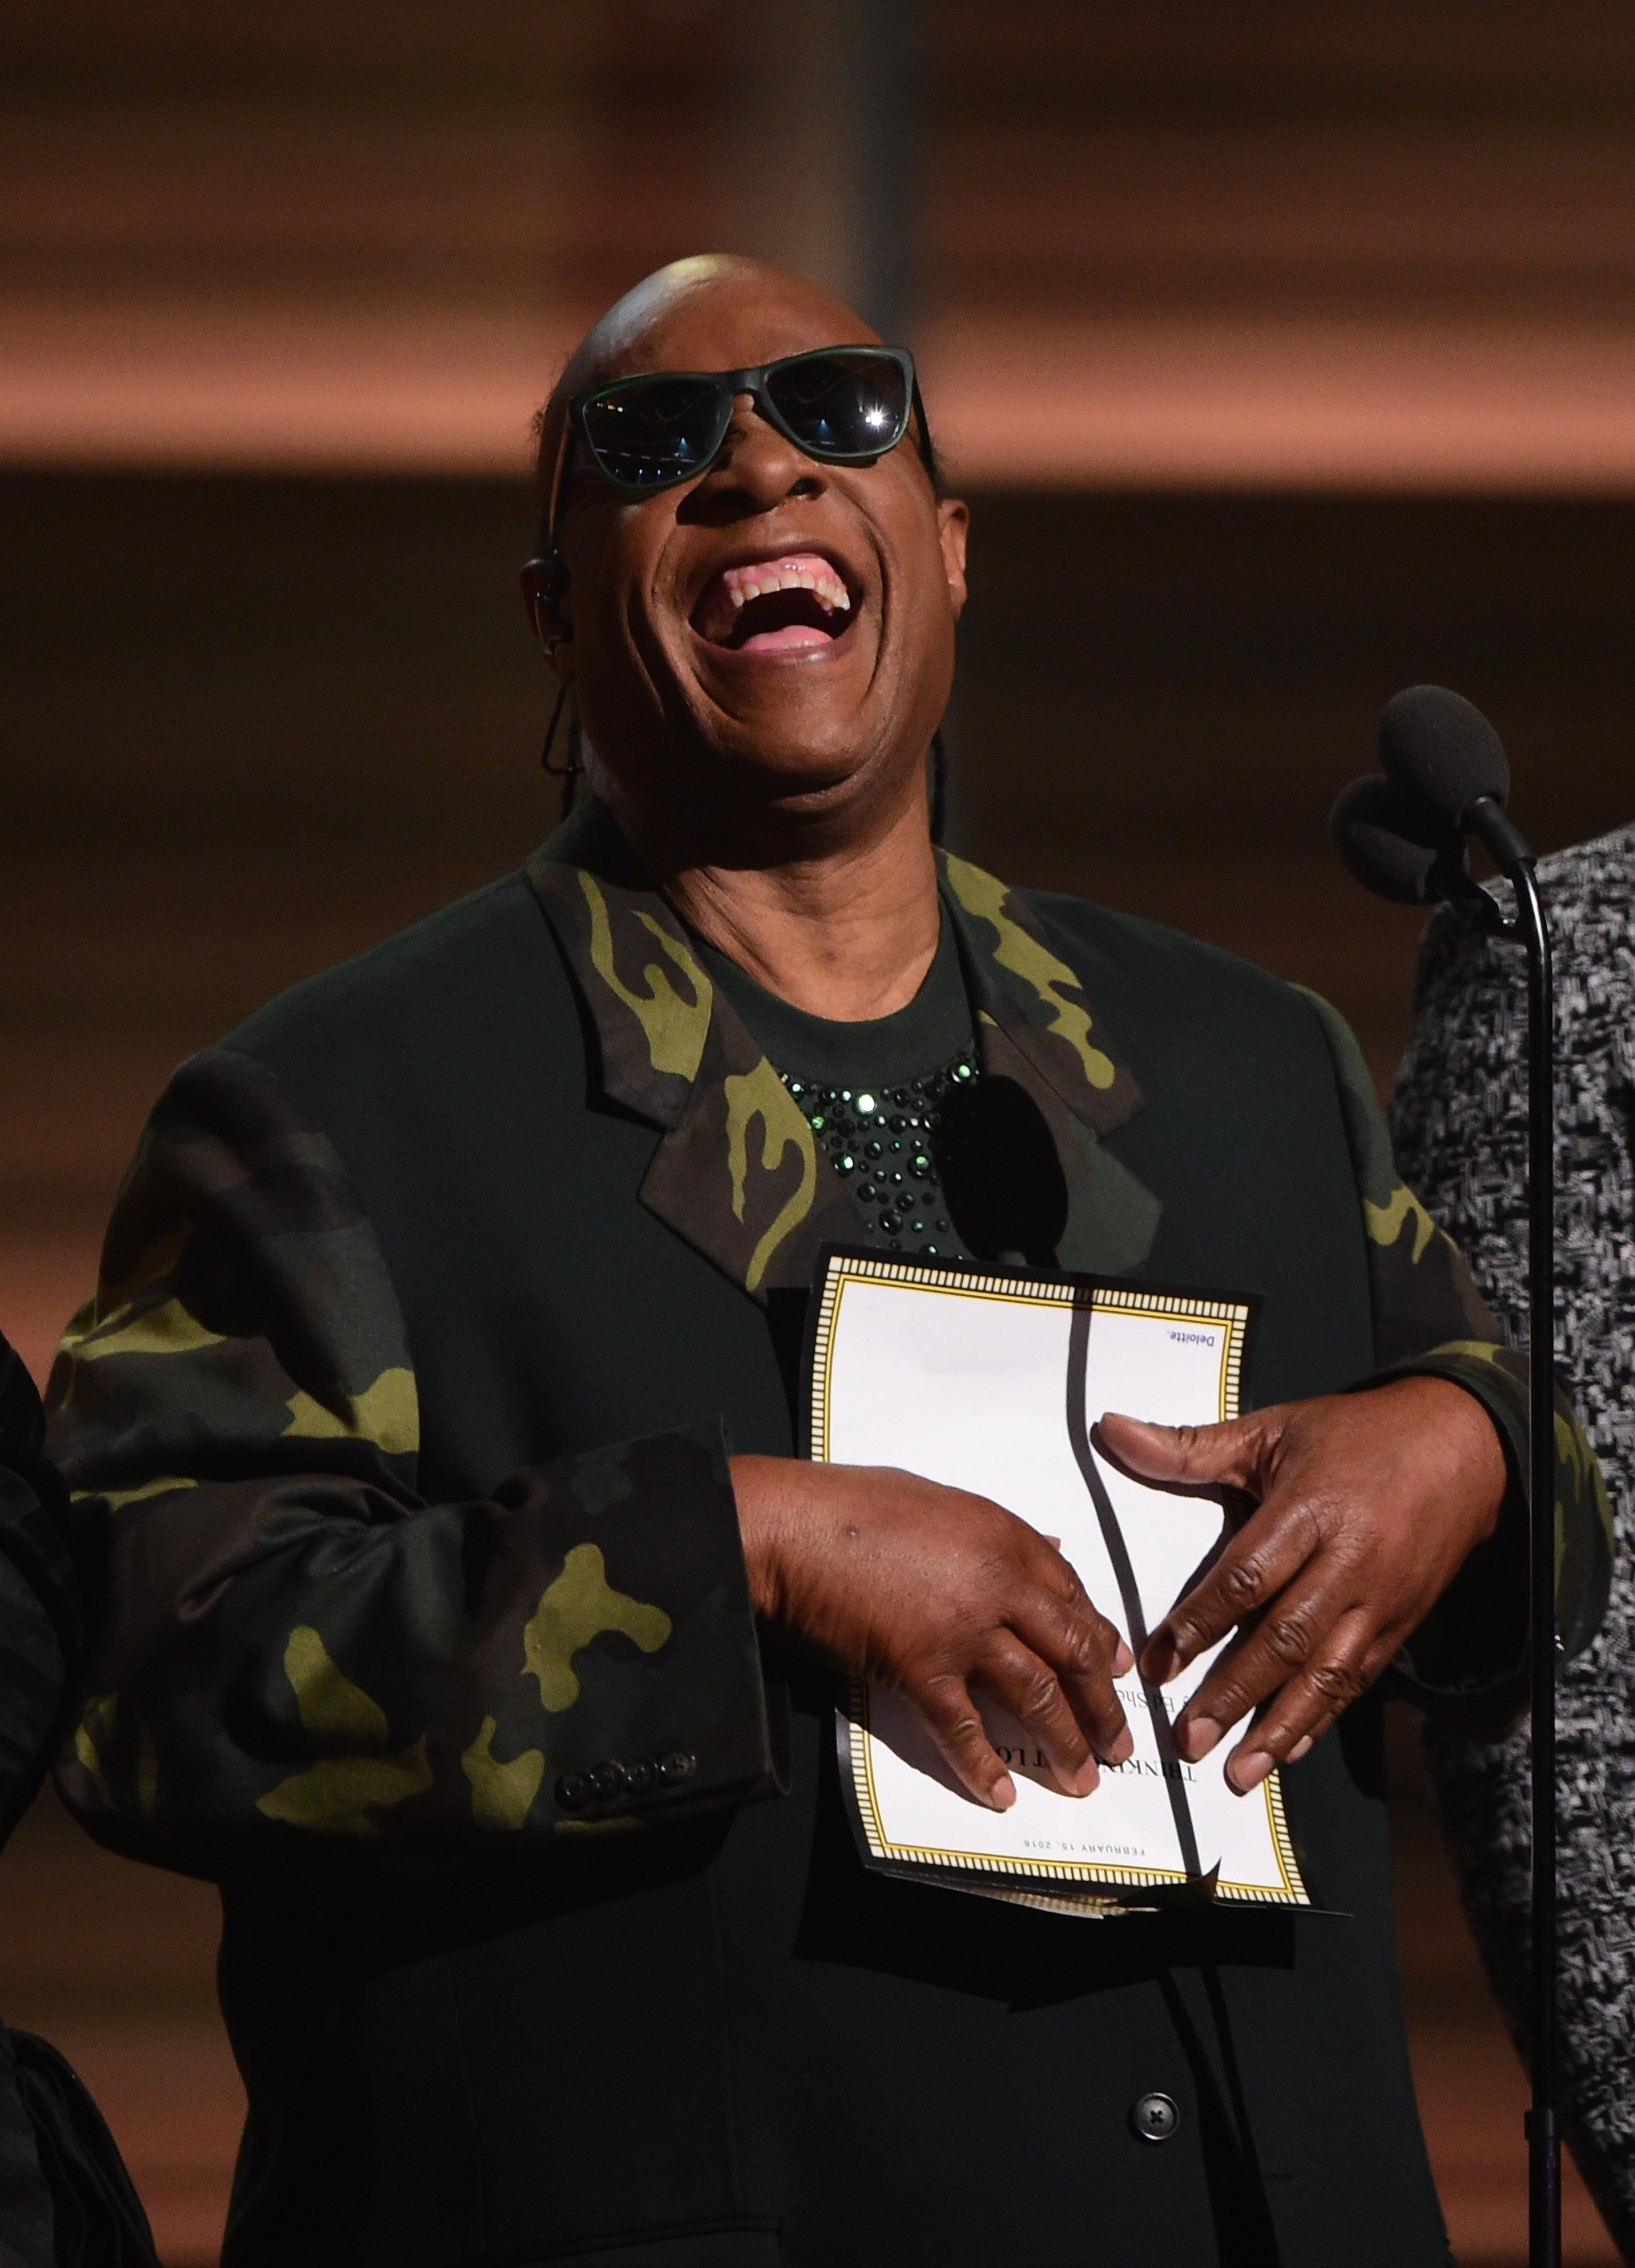 Musician  Stevie Wonder presents the Song of the Year on stage during the 58th Annual Grammy music Awards in Los Angeles February 15, 2016.  AFP PHOTO/  ROBYN BECK / AFP / ROBYN BECK        (Photo credit should read ROBYN BECK/AFP/Getty Images)